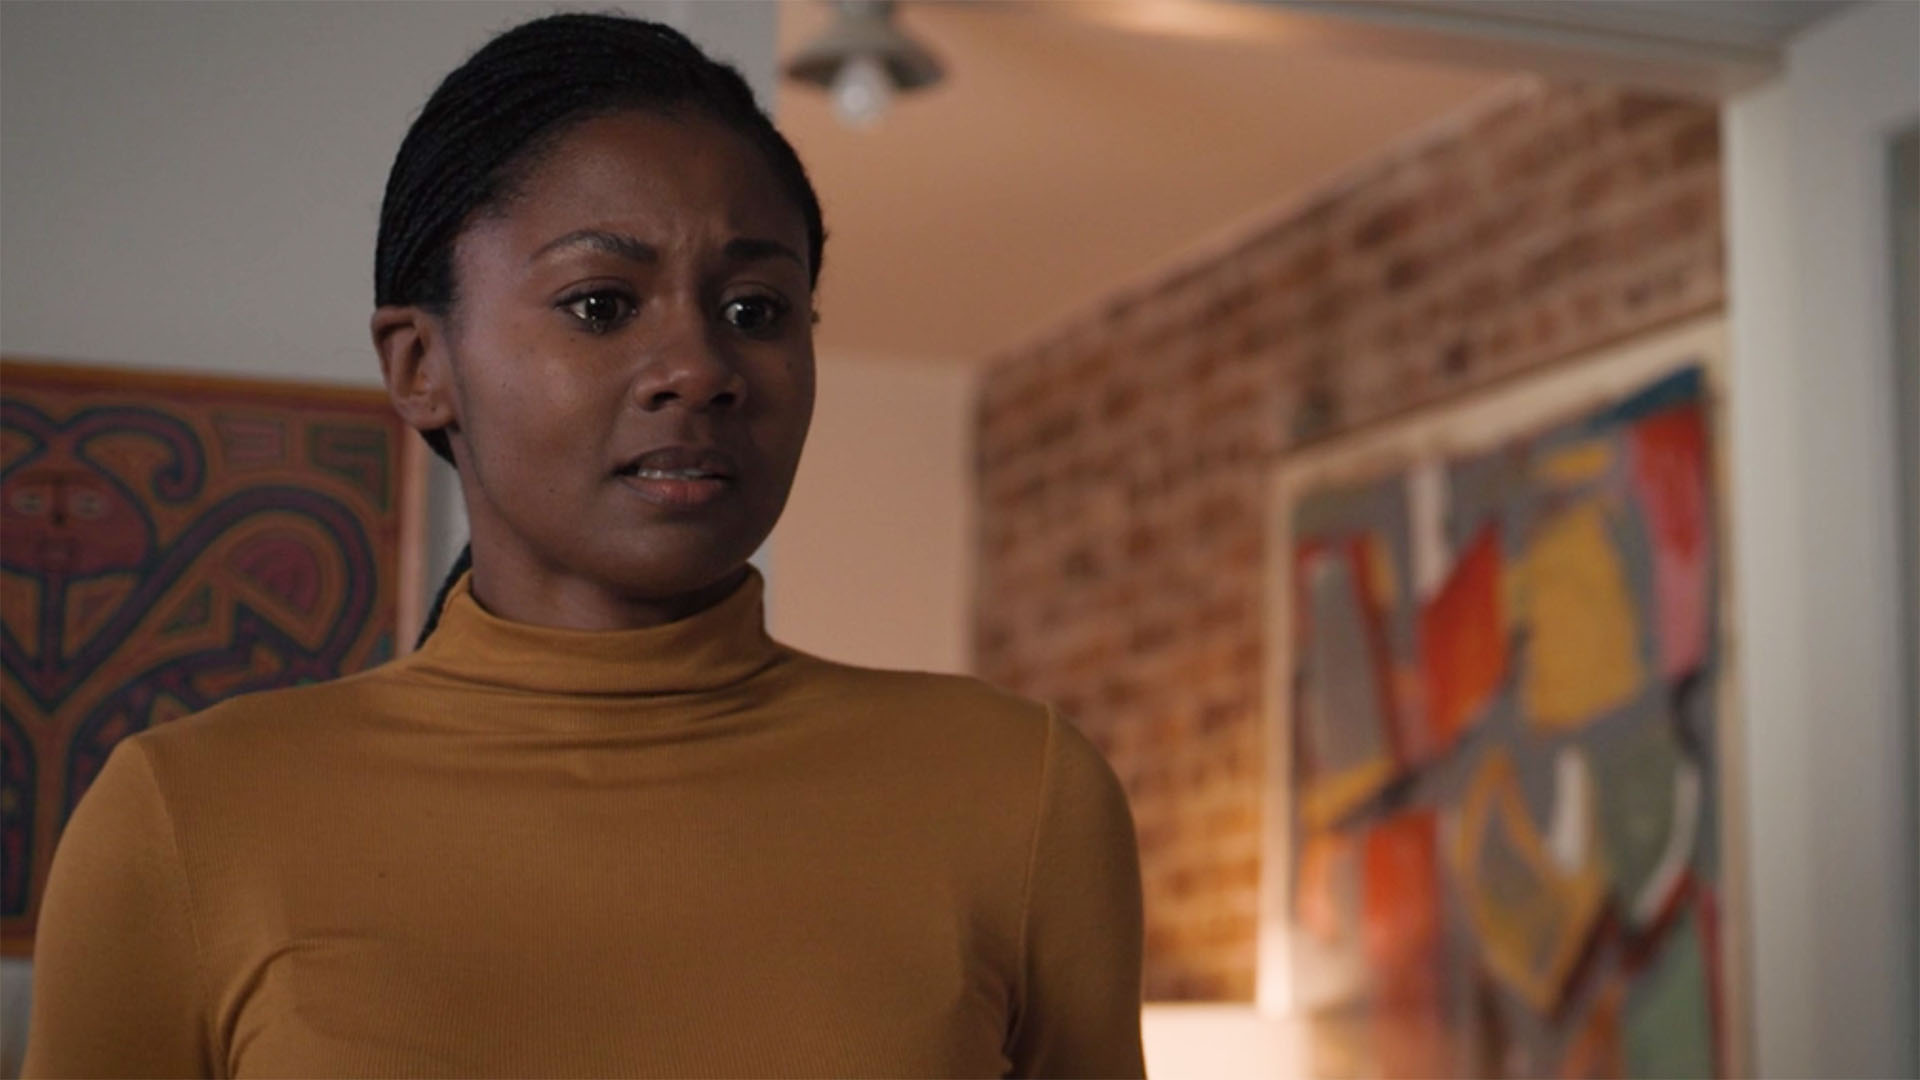 Emayatzy Corinealdi as Sonia Karmanzi